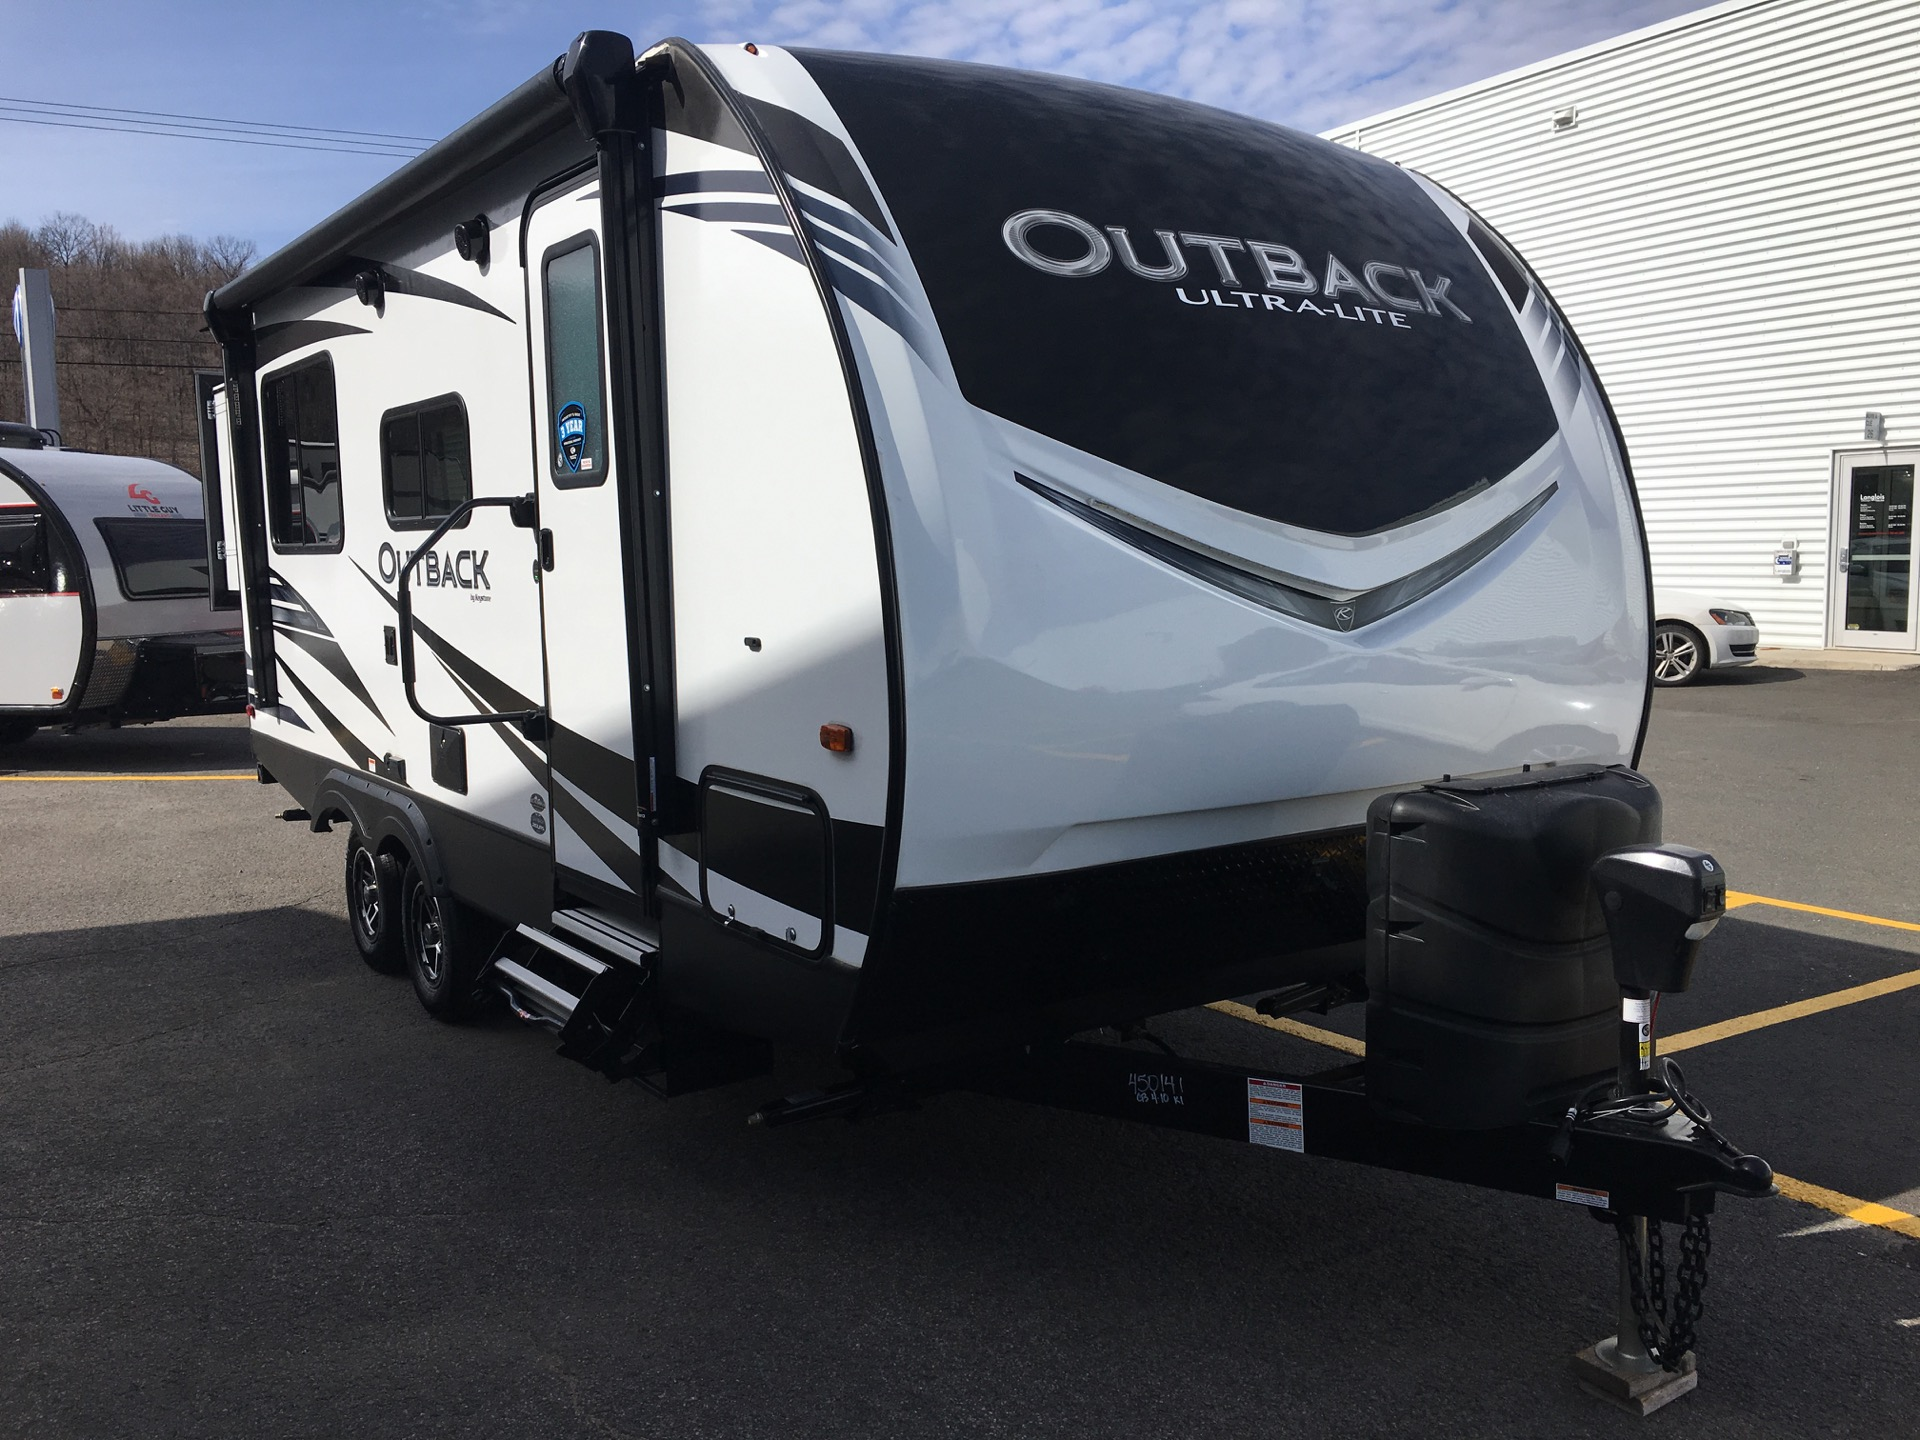 Outback Ultra-Lite 210 URS